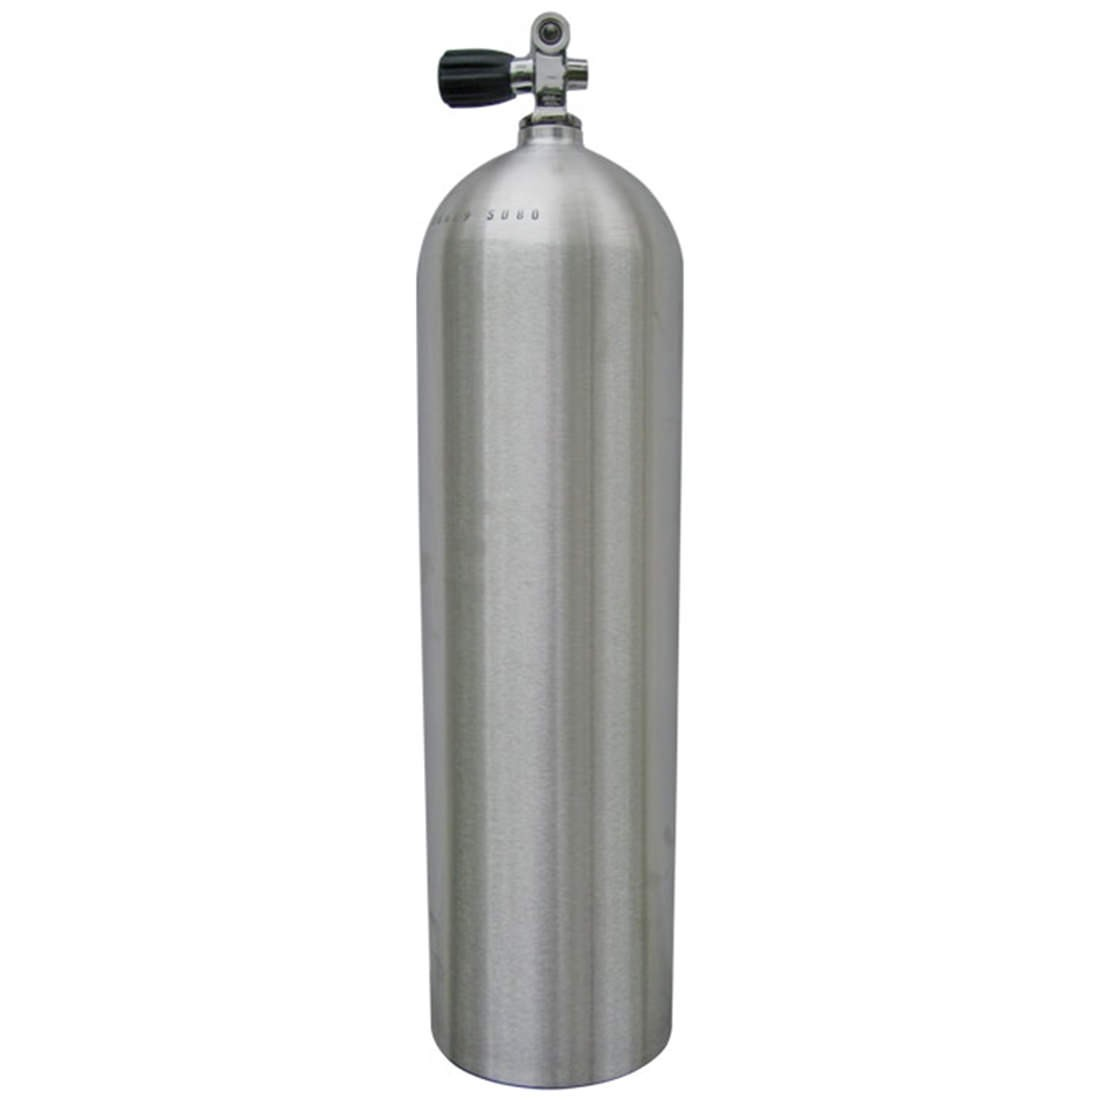 Worthington AL100 Aluminum SCUBA Cylinder with Pro Valve - Brushed No Coat AL100BNC